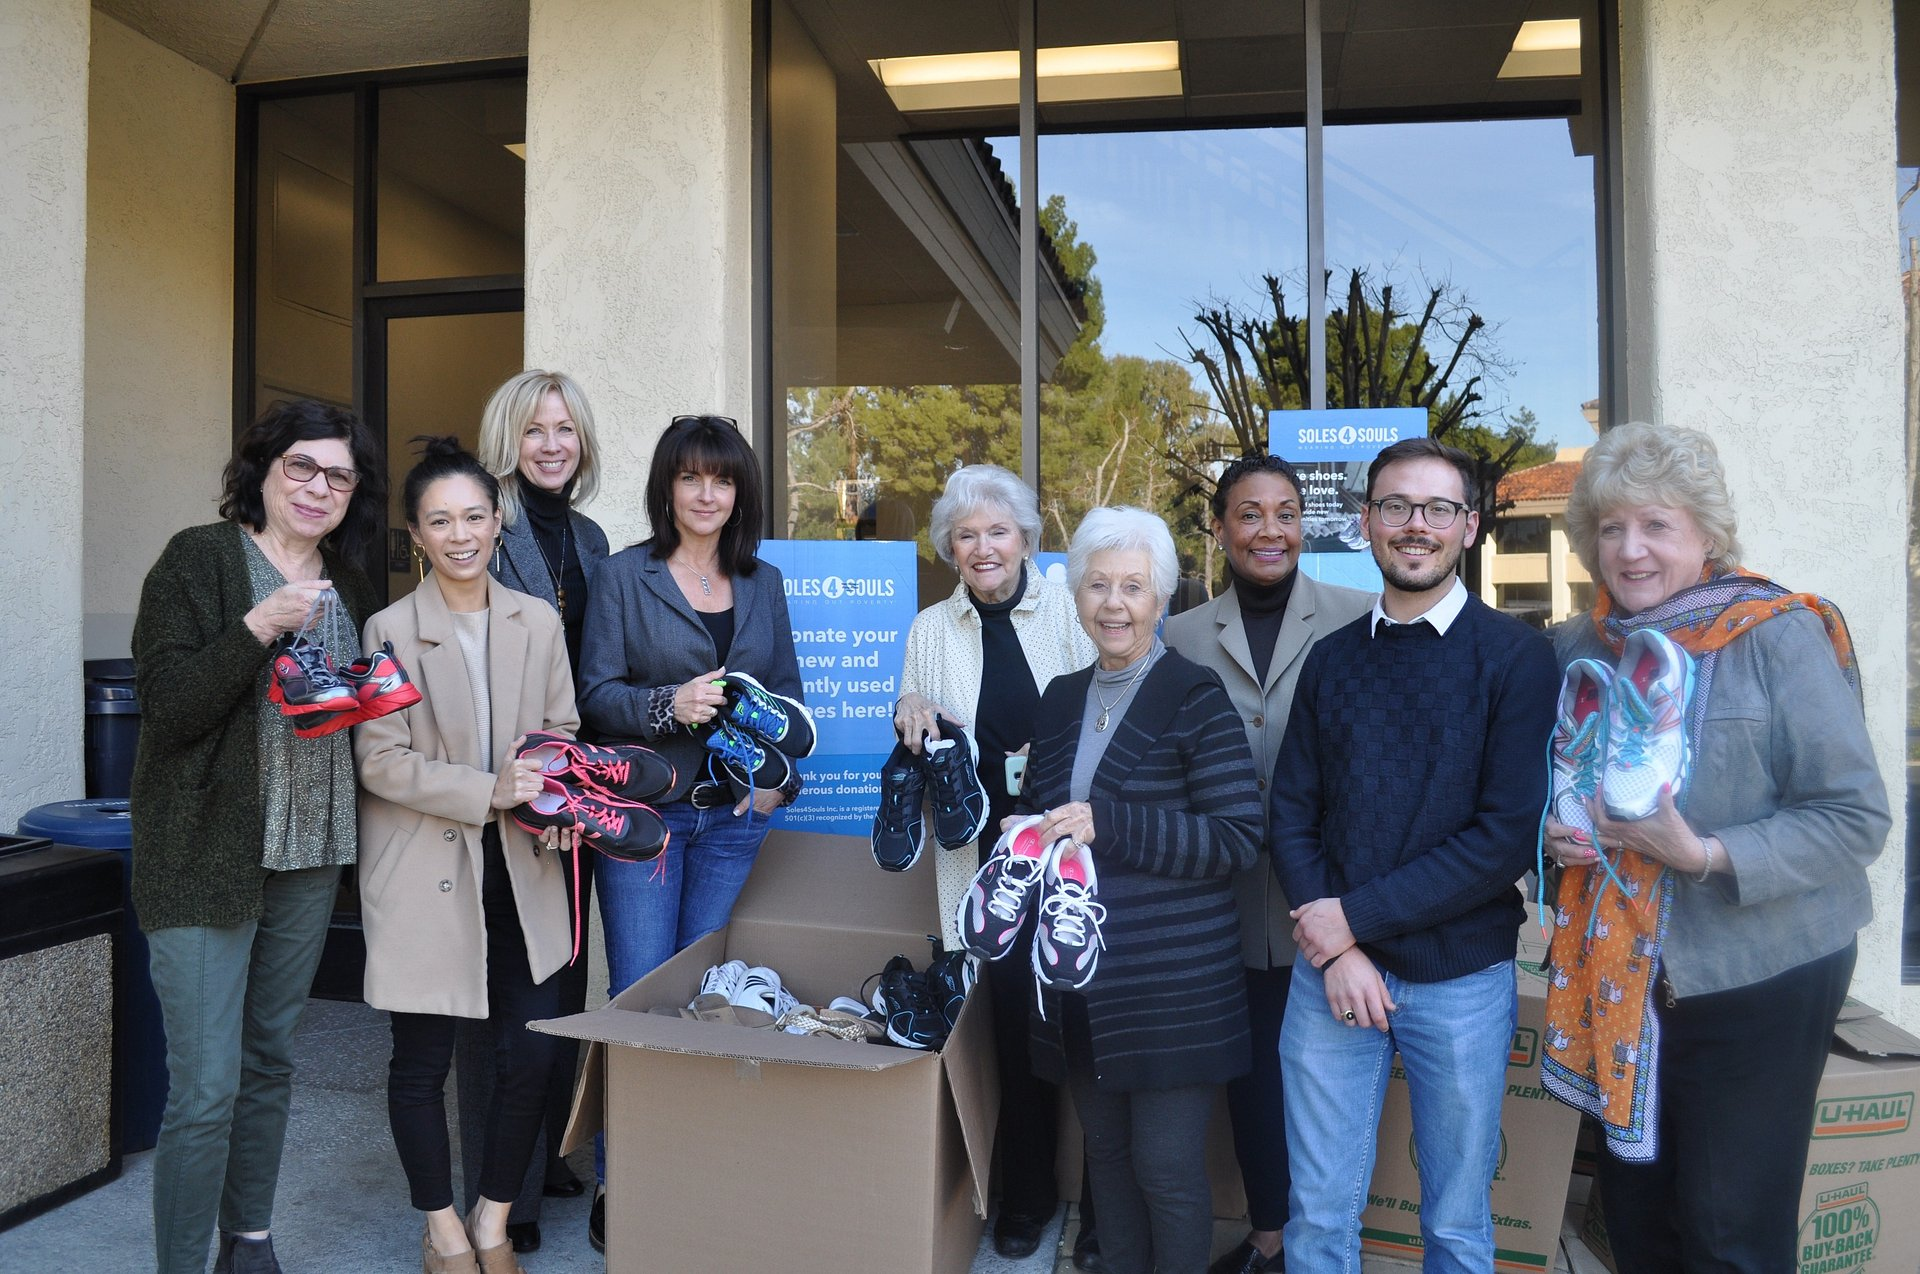 The Westlake Village Regional Office of Coldwell Banker Realty Collects More Than 600 Pairs of Shoes for Soles4Souls